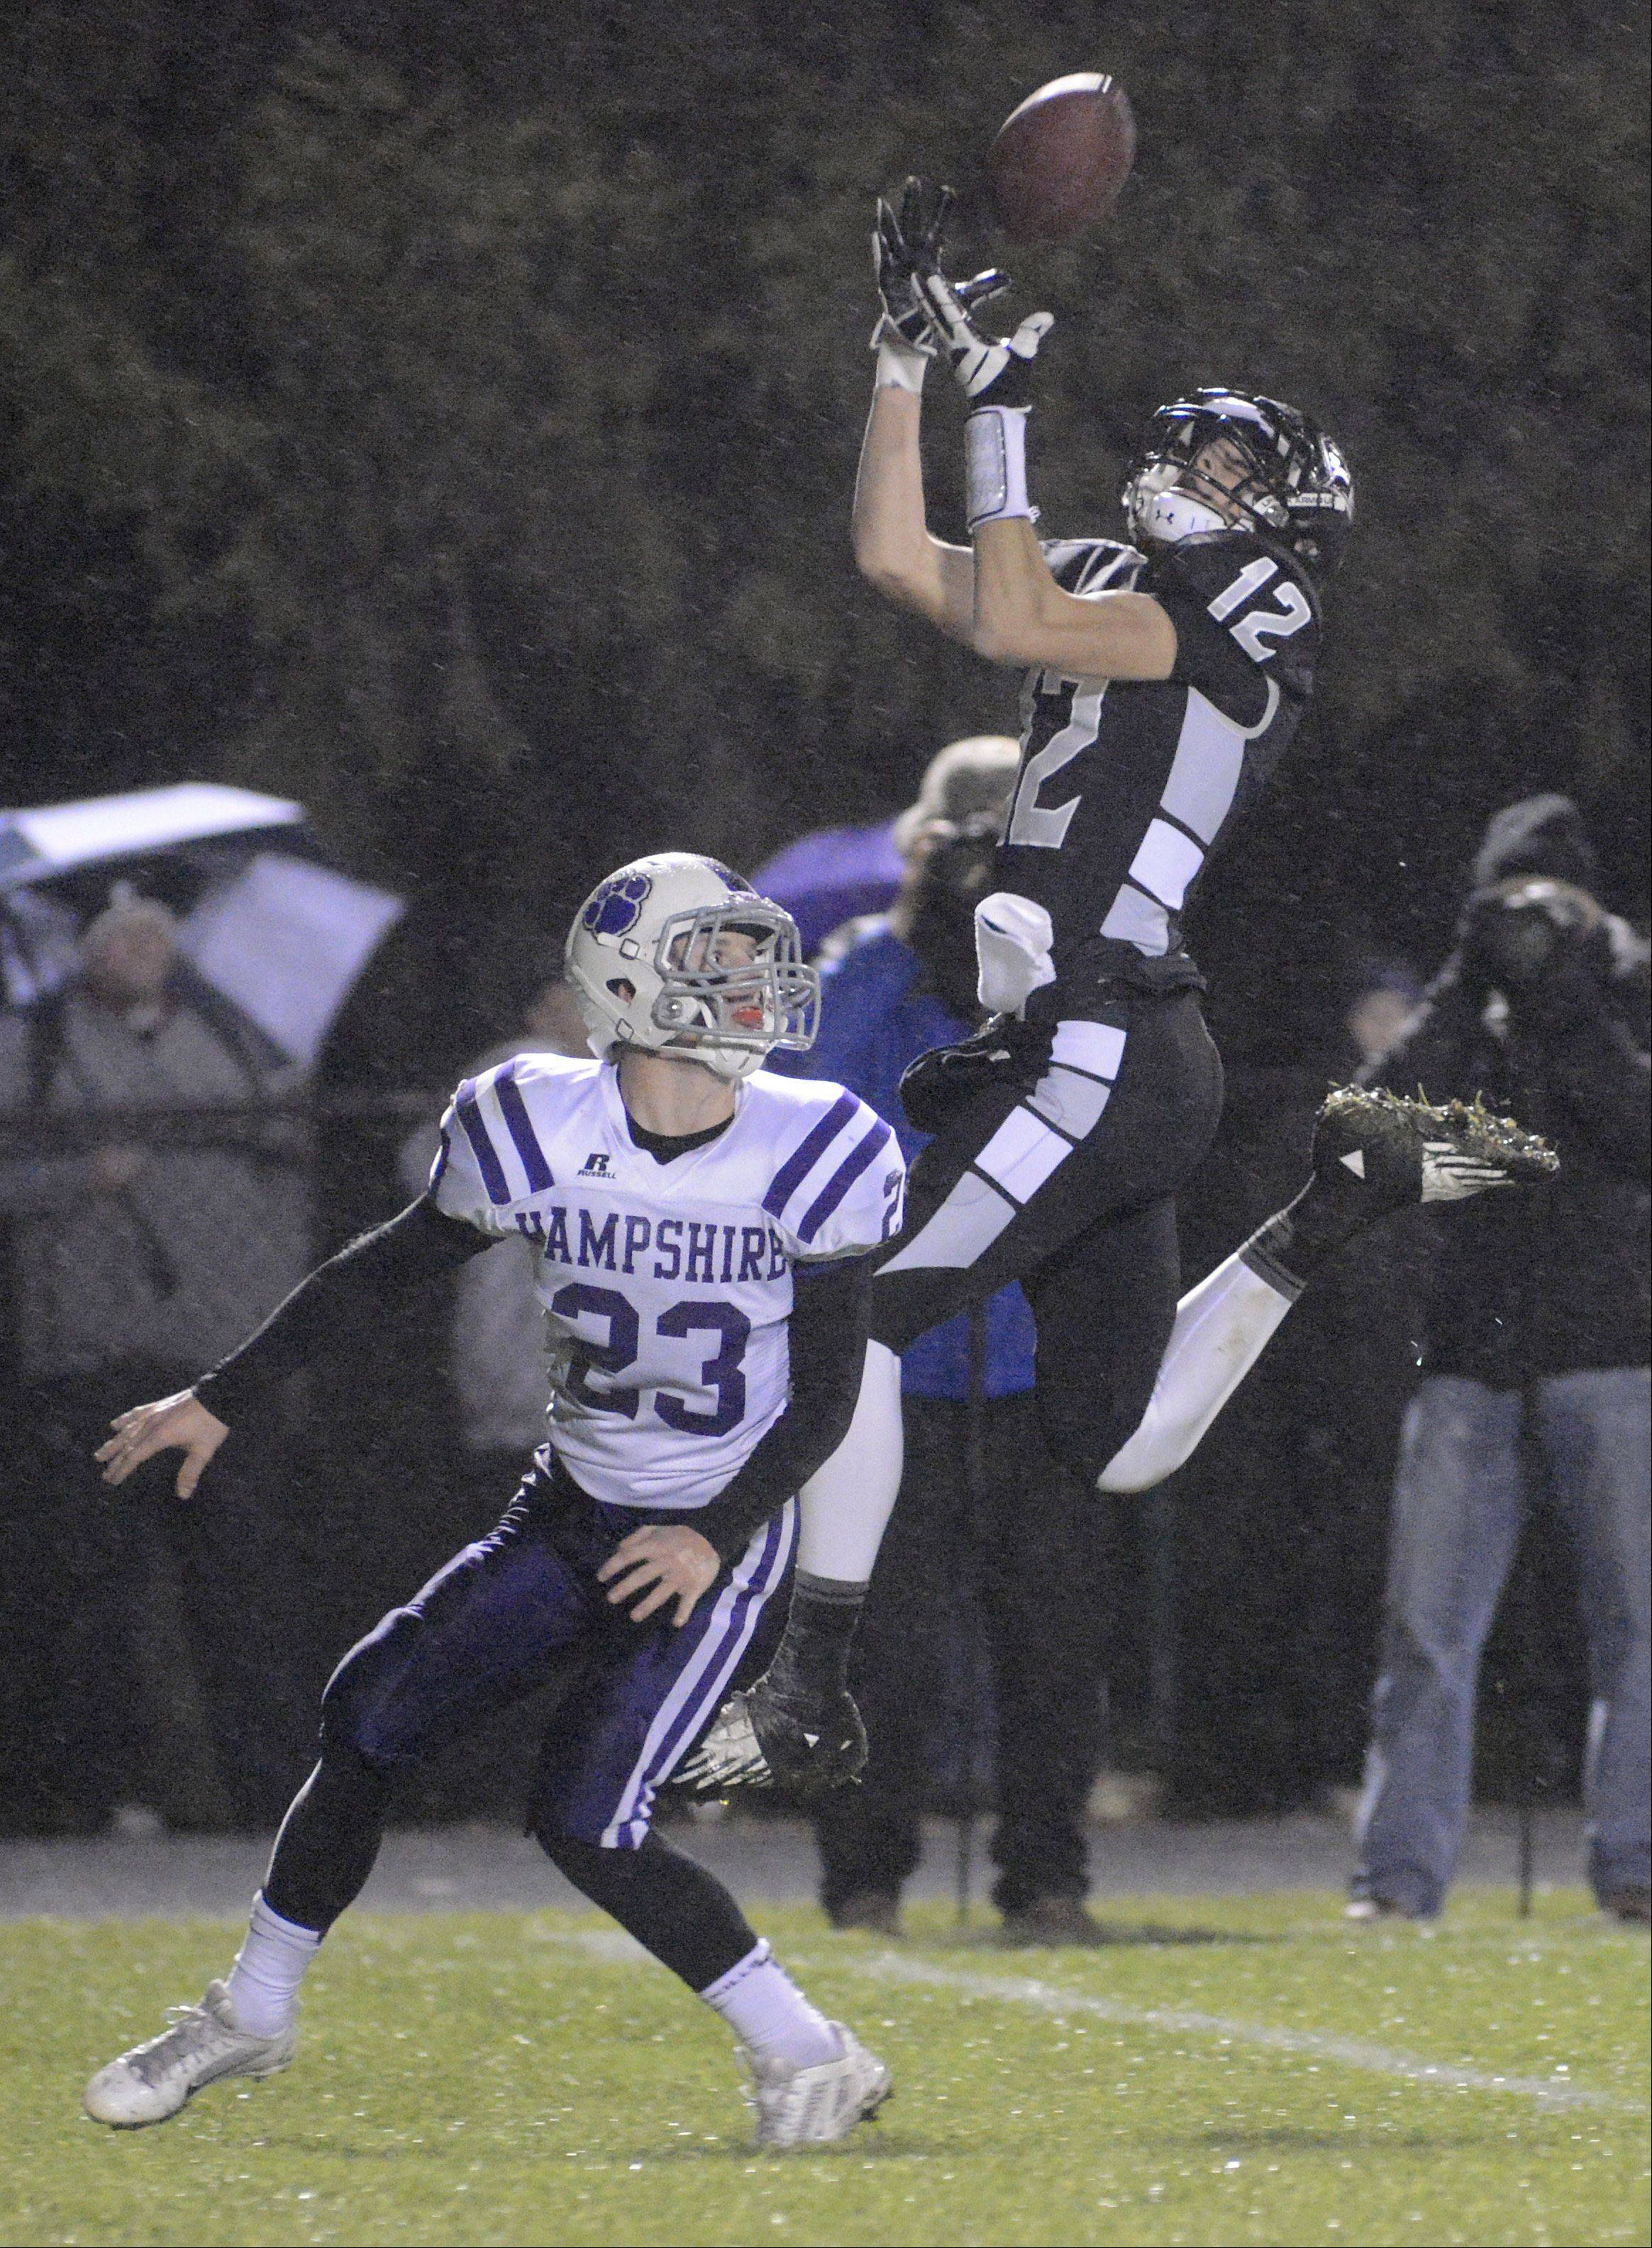 Laura Stoecker/lstoecker@dailyherald.com Kaneland's John Pruett leaps to complete a pass, but is taken down momentarily by Hampshire's Trey Schramm in the first quarter on Friday, November 1.